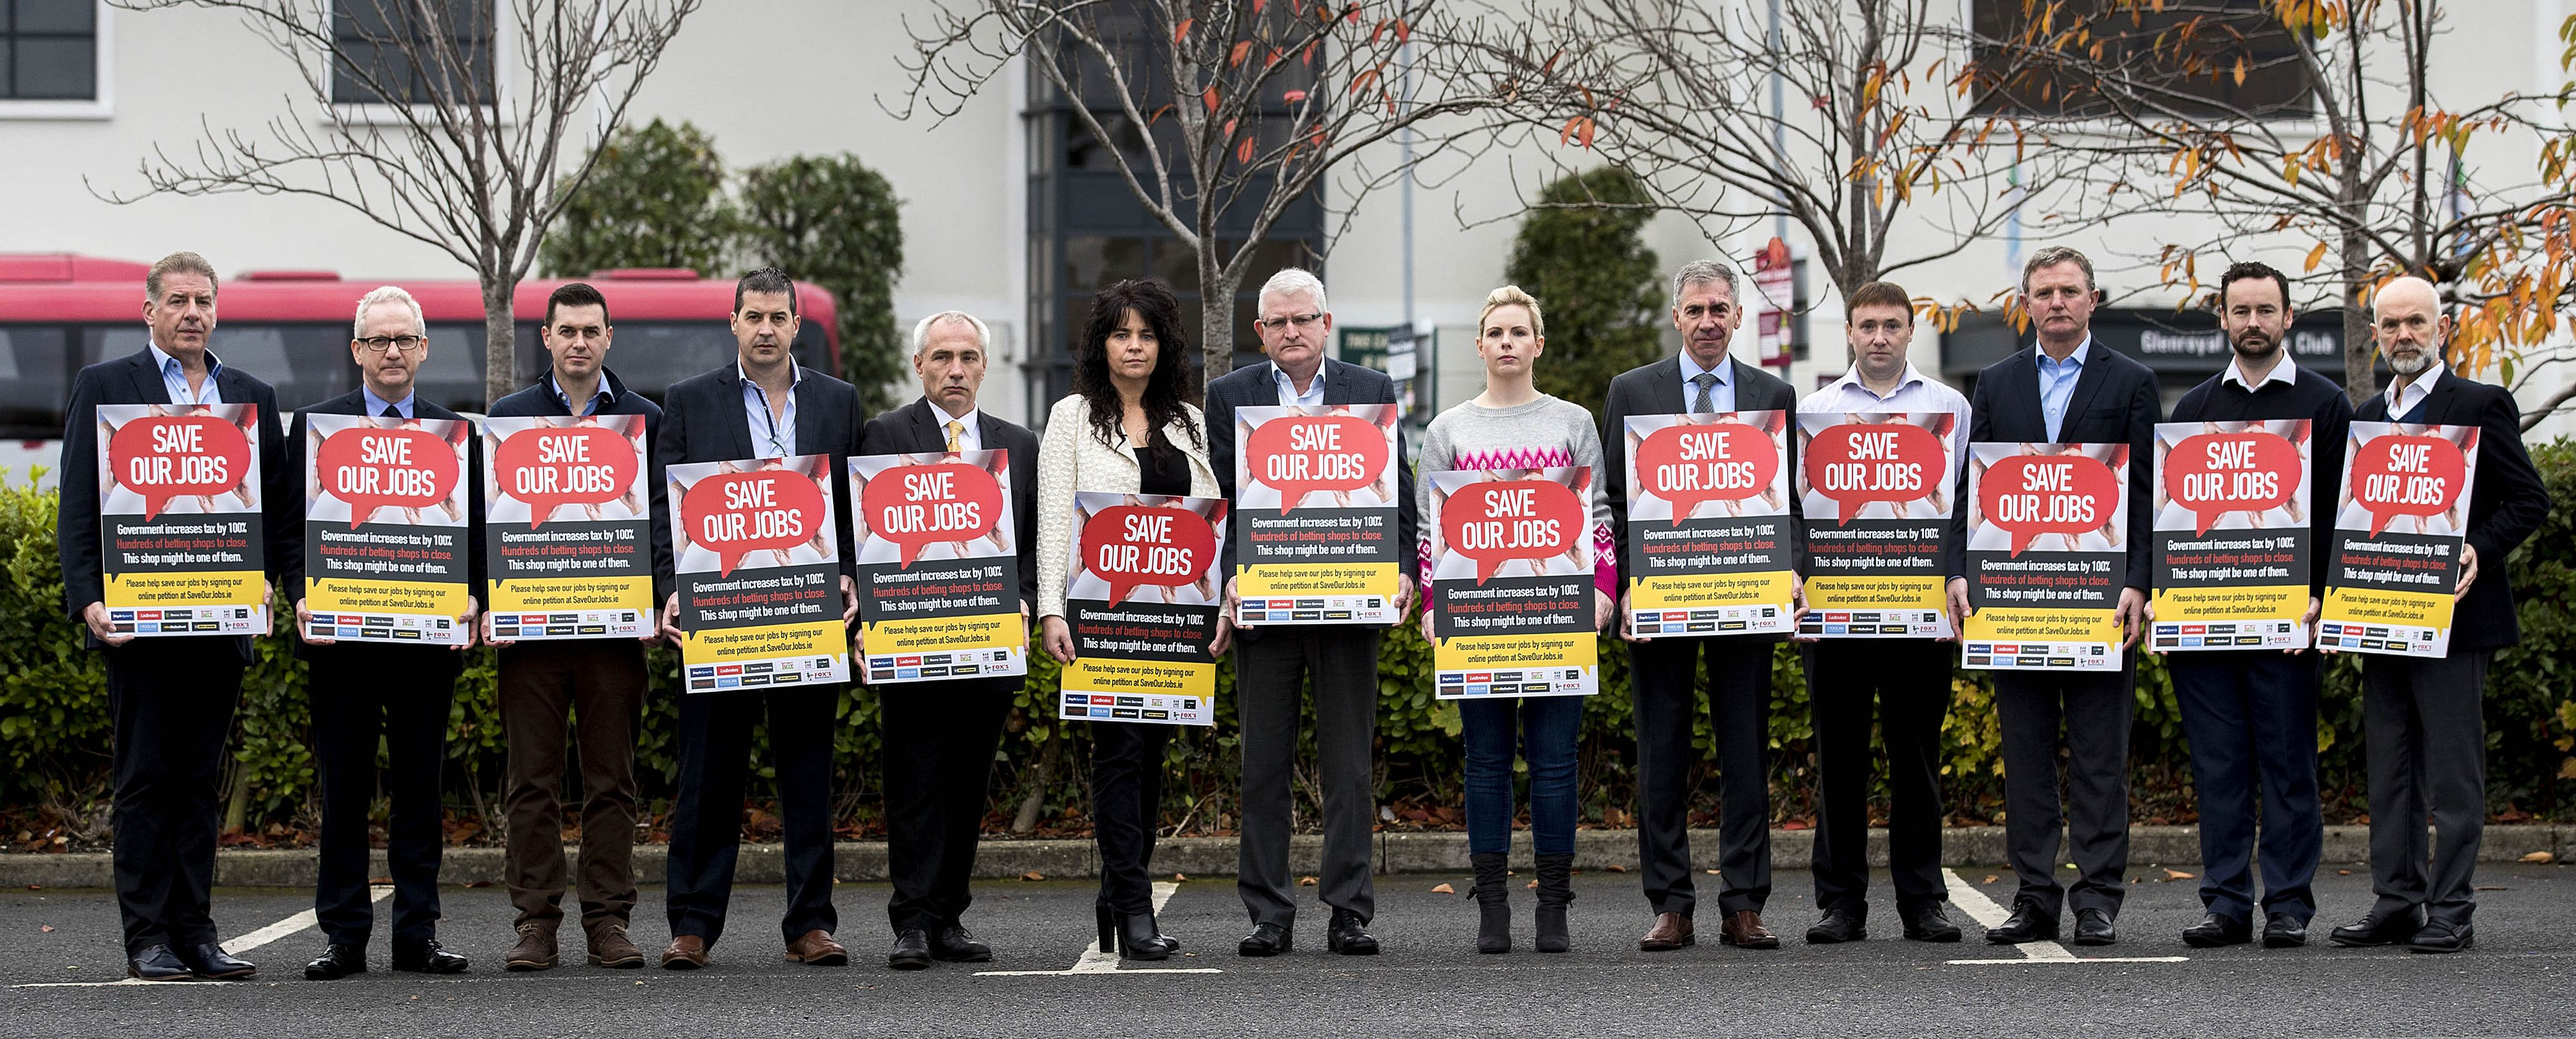 National Campaign against proposed doubling of Betting tax - Irish